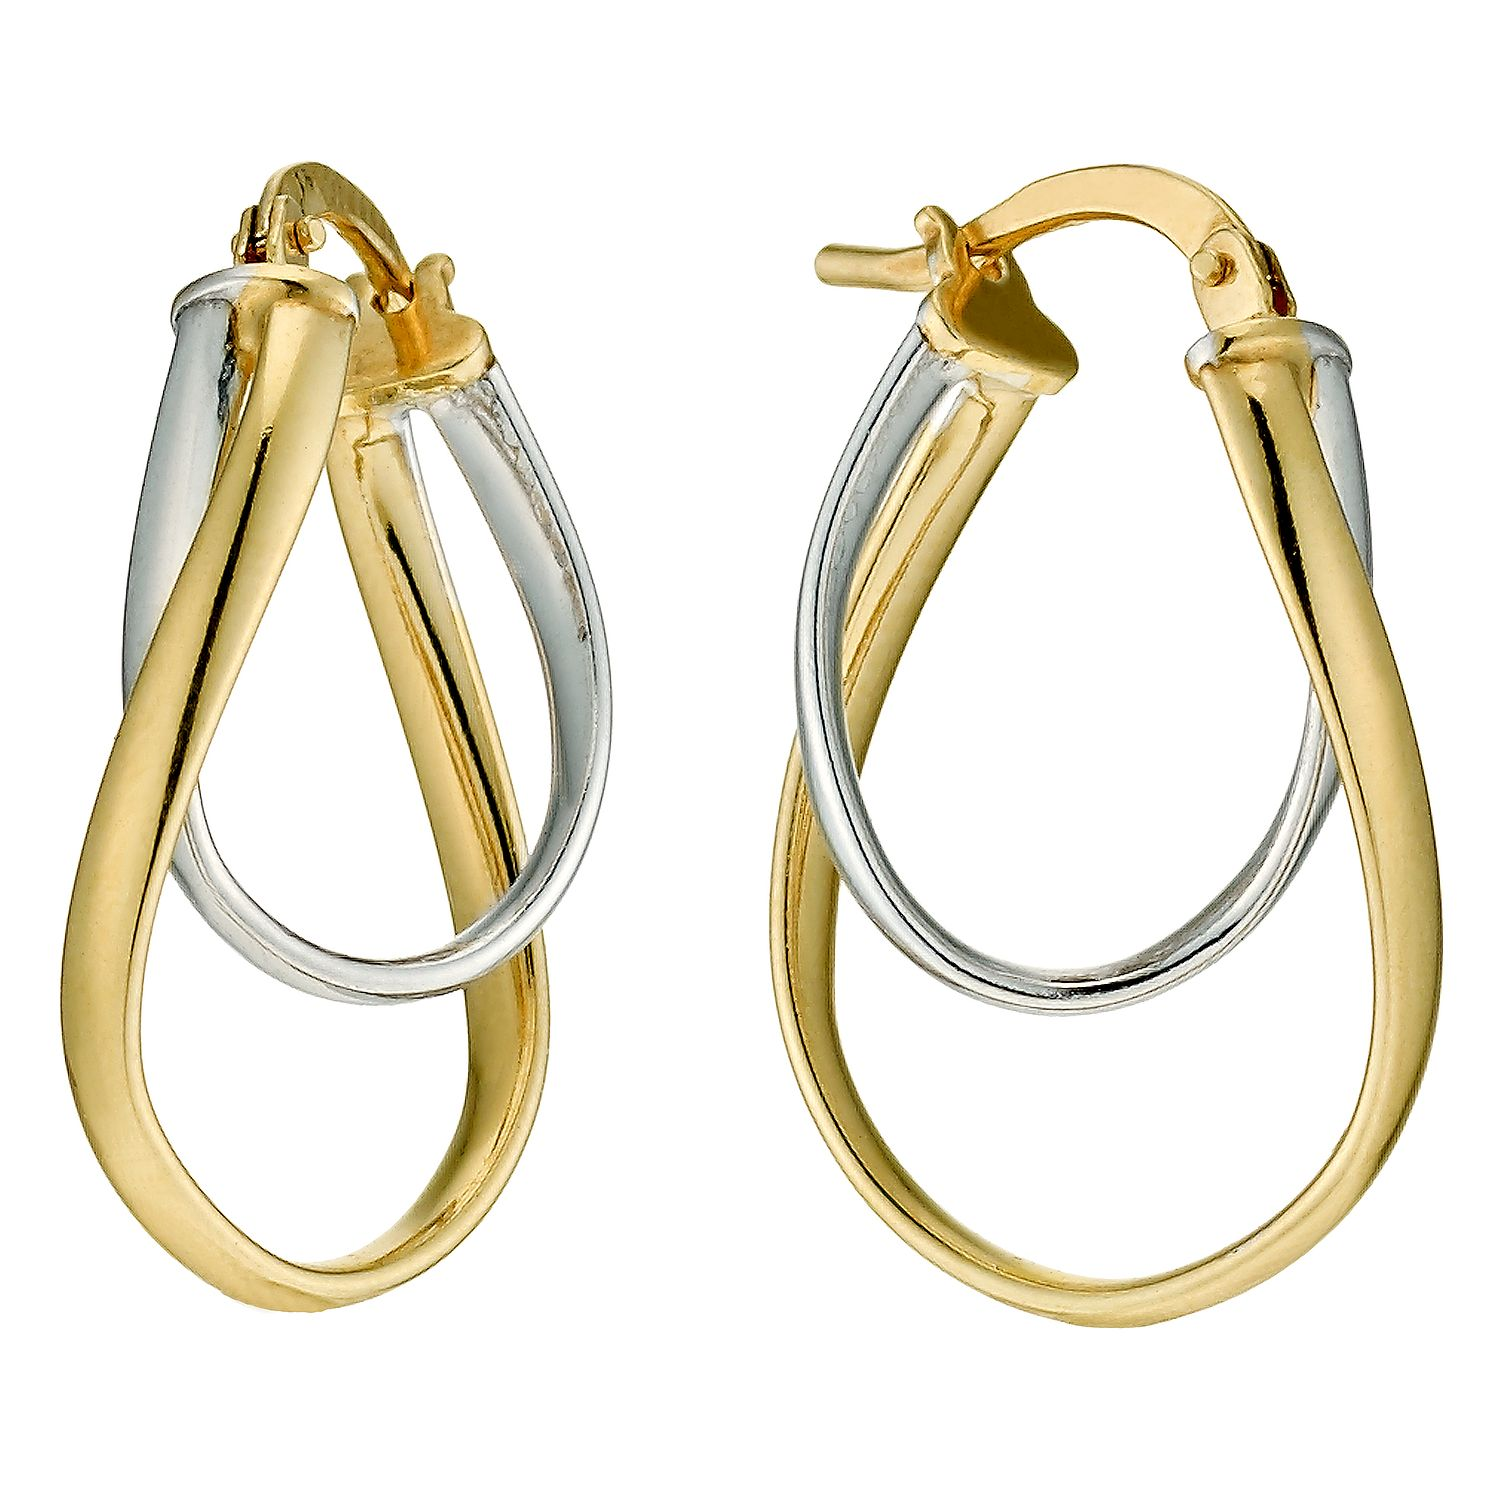 Together Silver & 9ct Bonded Gold Double Creole Earrings - Product number 9689400